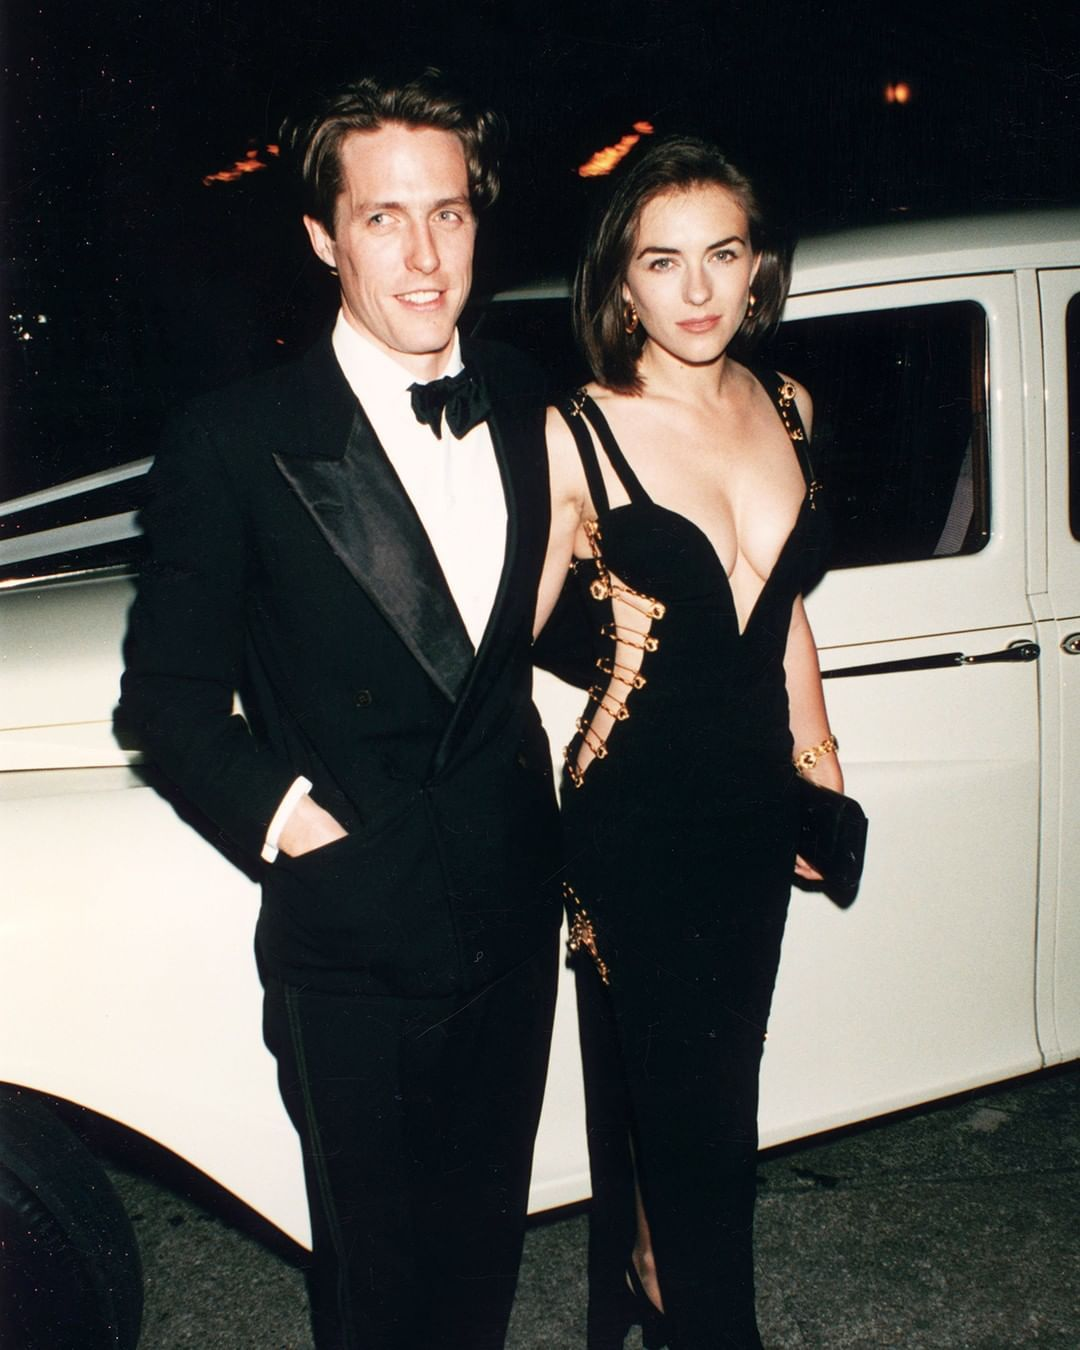 Harper S Bazaar Australia On Instagram This Safety Pin Versace Dress Might Be Considered Liz Hurley S Most Iconic Look Versace Dress Dapper Style Hugh Grant